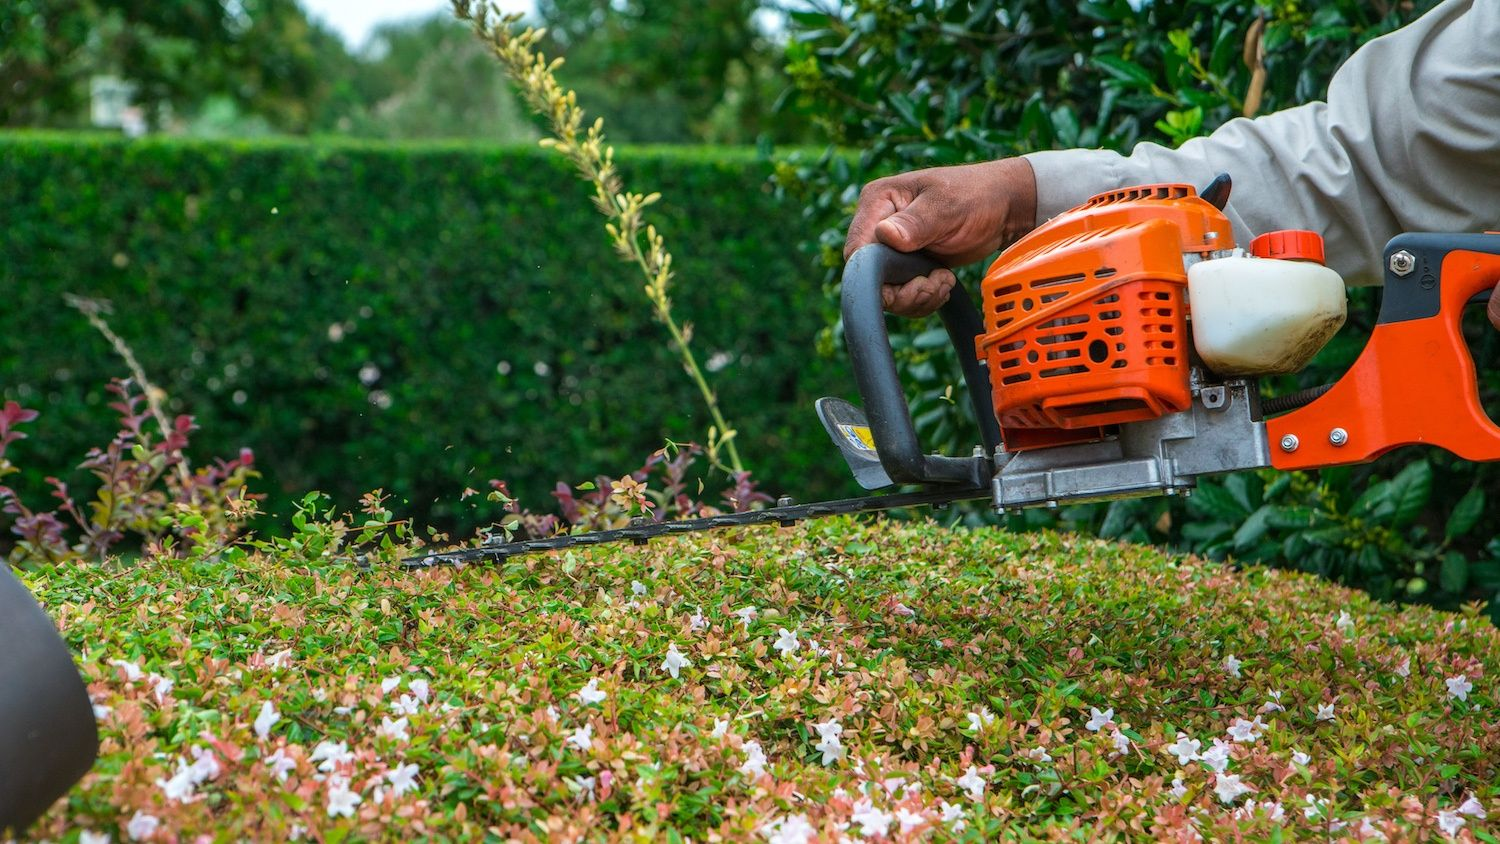 shrubs being trimmed